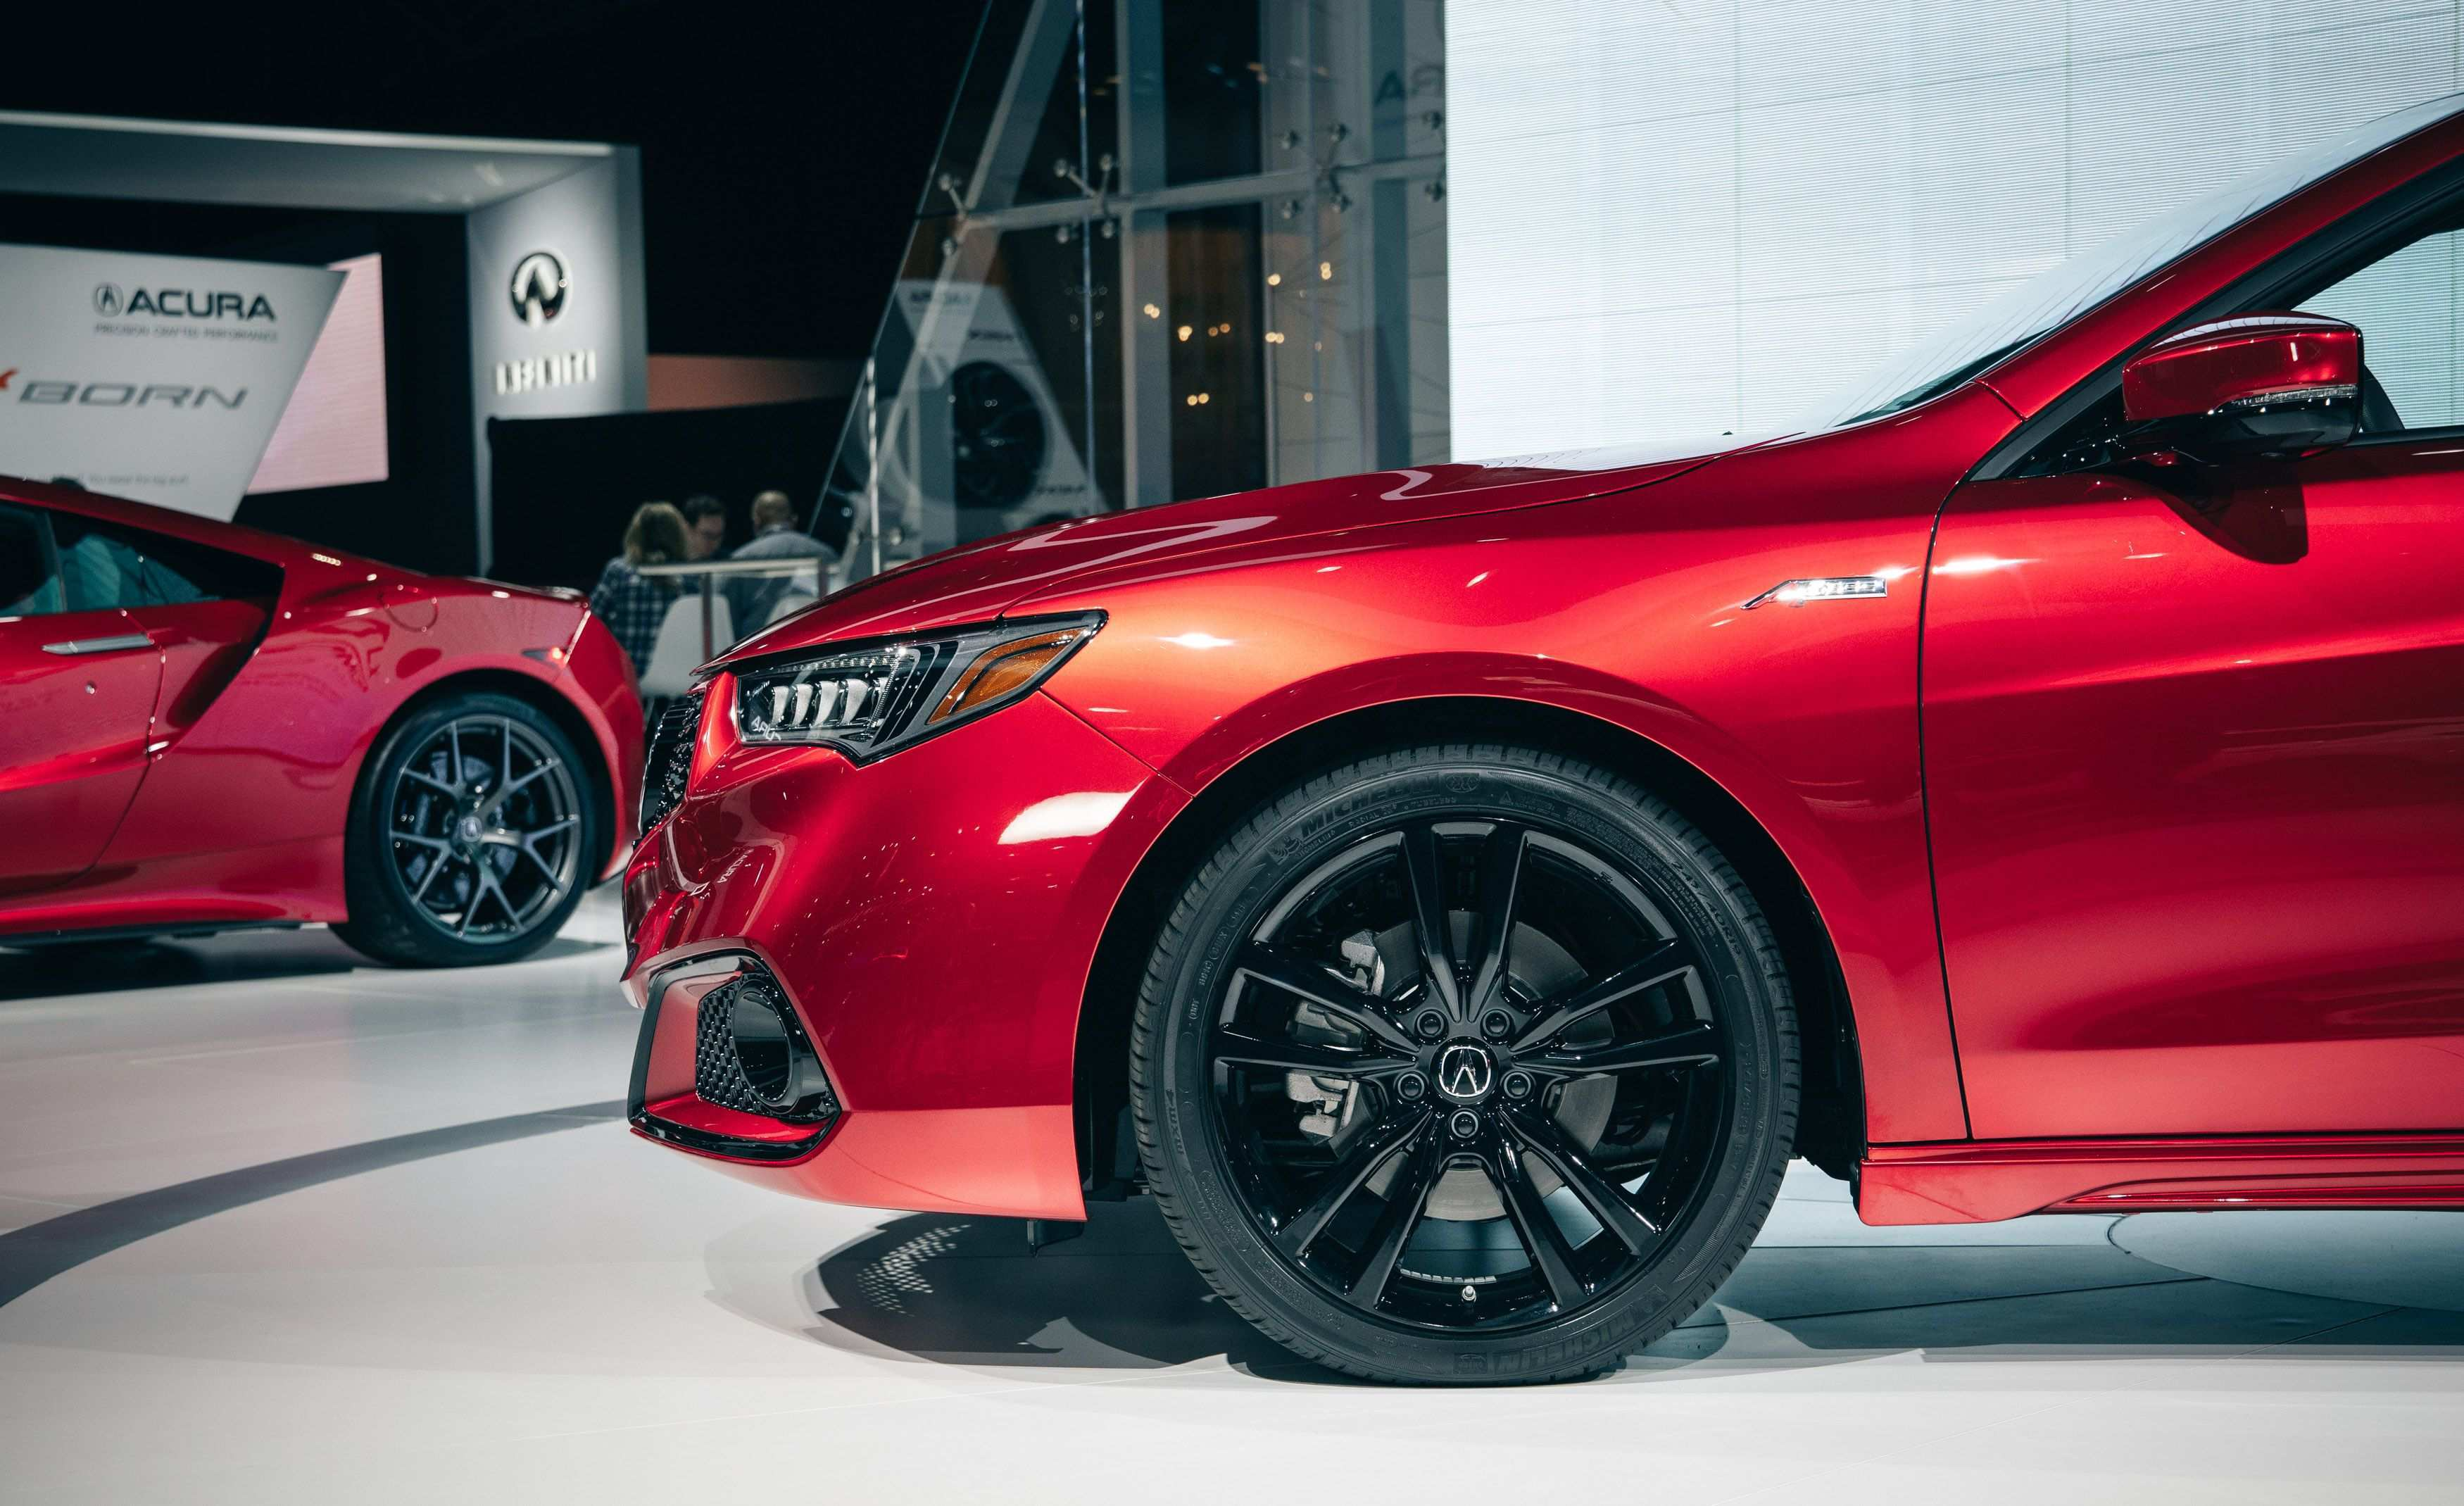 43 All New Acura Tlx 2020 Price Specs and Review for Acura Tlx 2020 Price